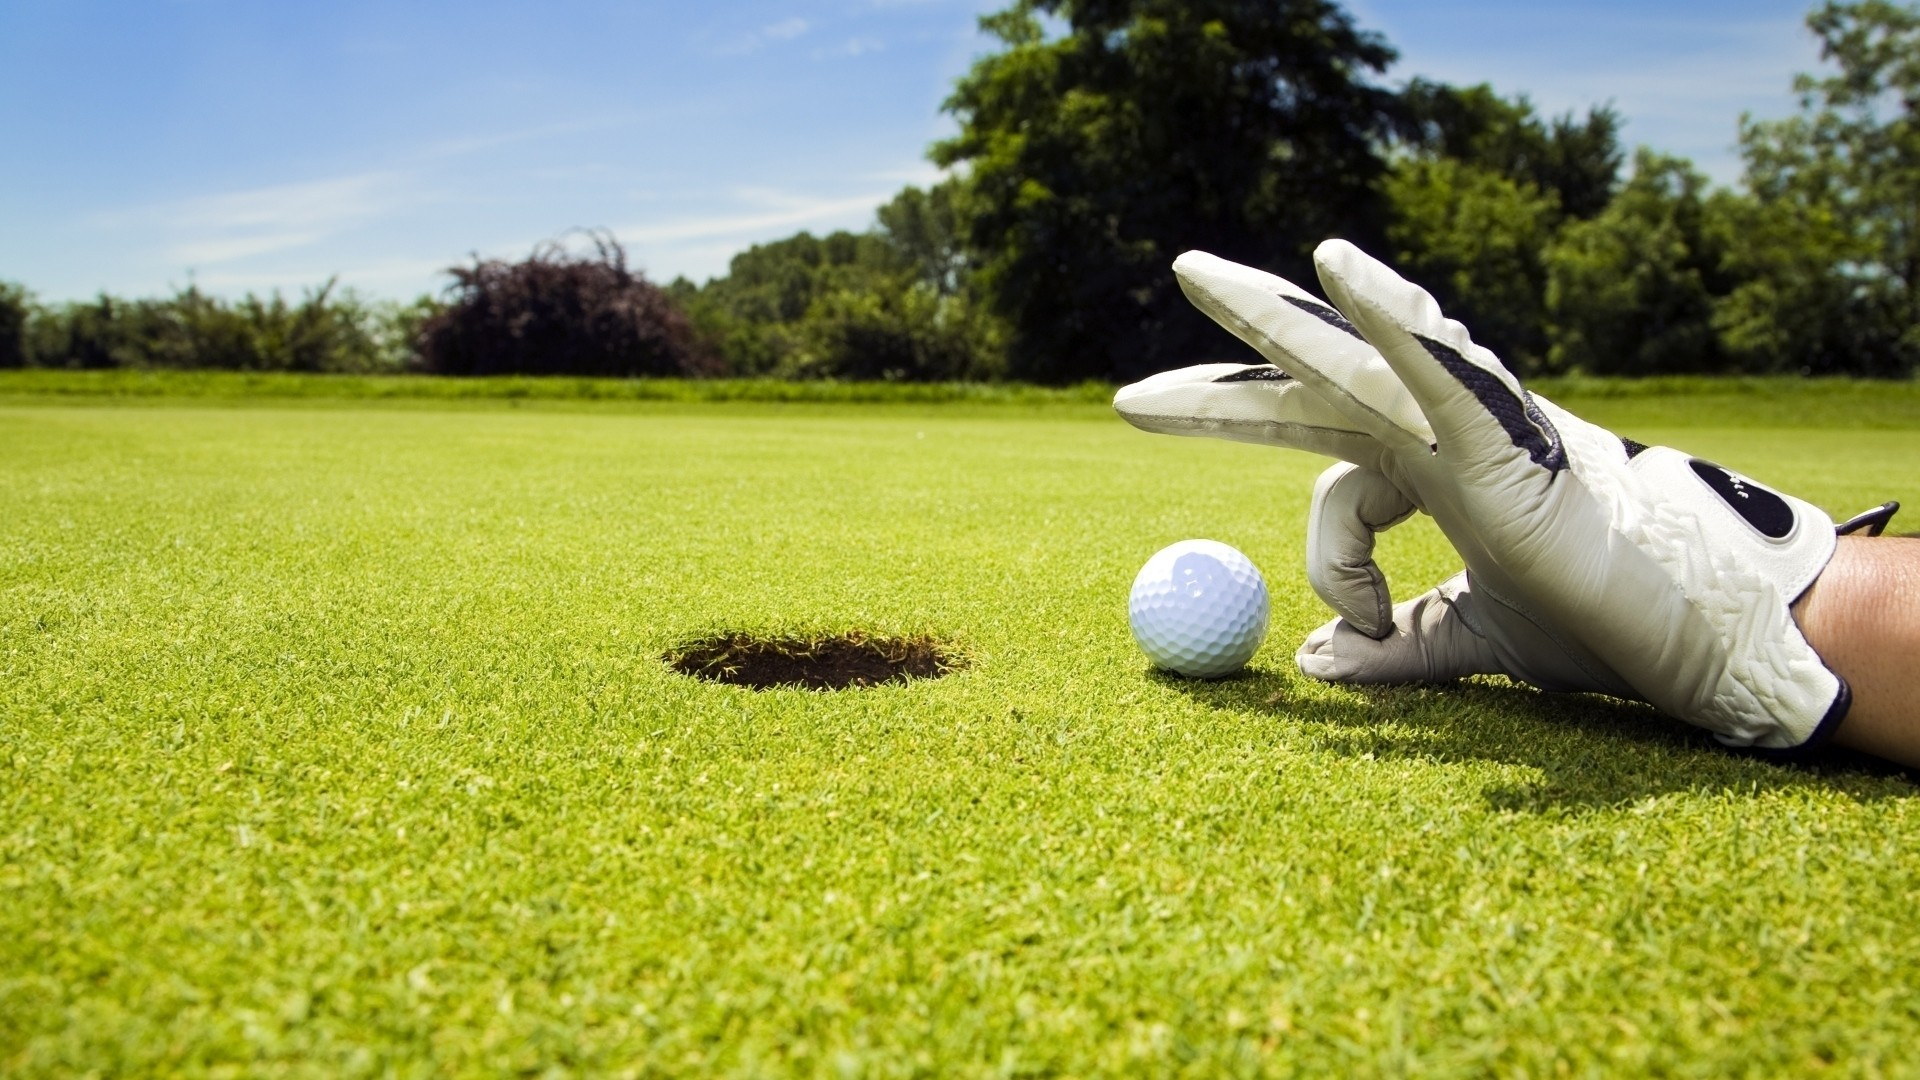 Get the latest golf, hand, ball news, pictures and videos and learn all  about golf, hand, ball from wallpapers4u.org, your wallpaper news source.